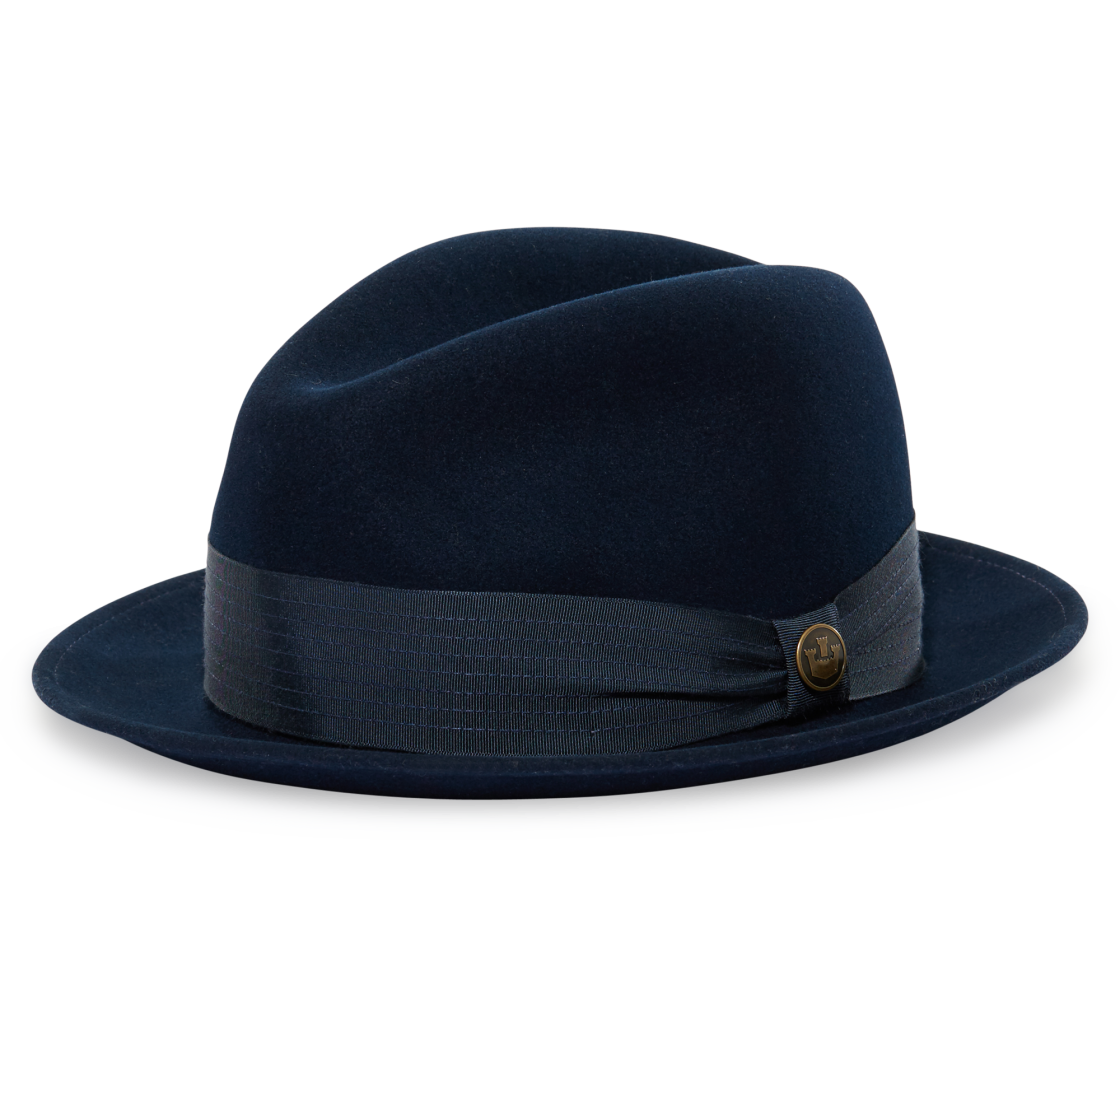 4f77e358e91dd2 Sugar Blues | For the Love of Hats | Hats, Fedora hat, Hats for men